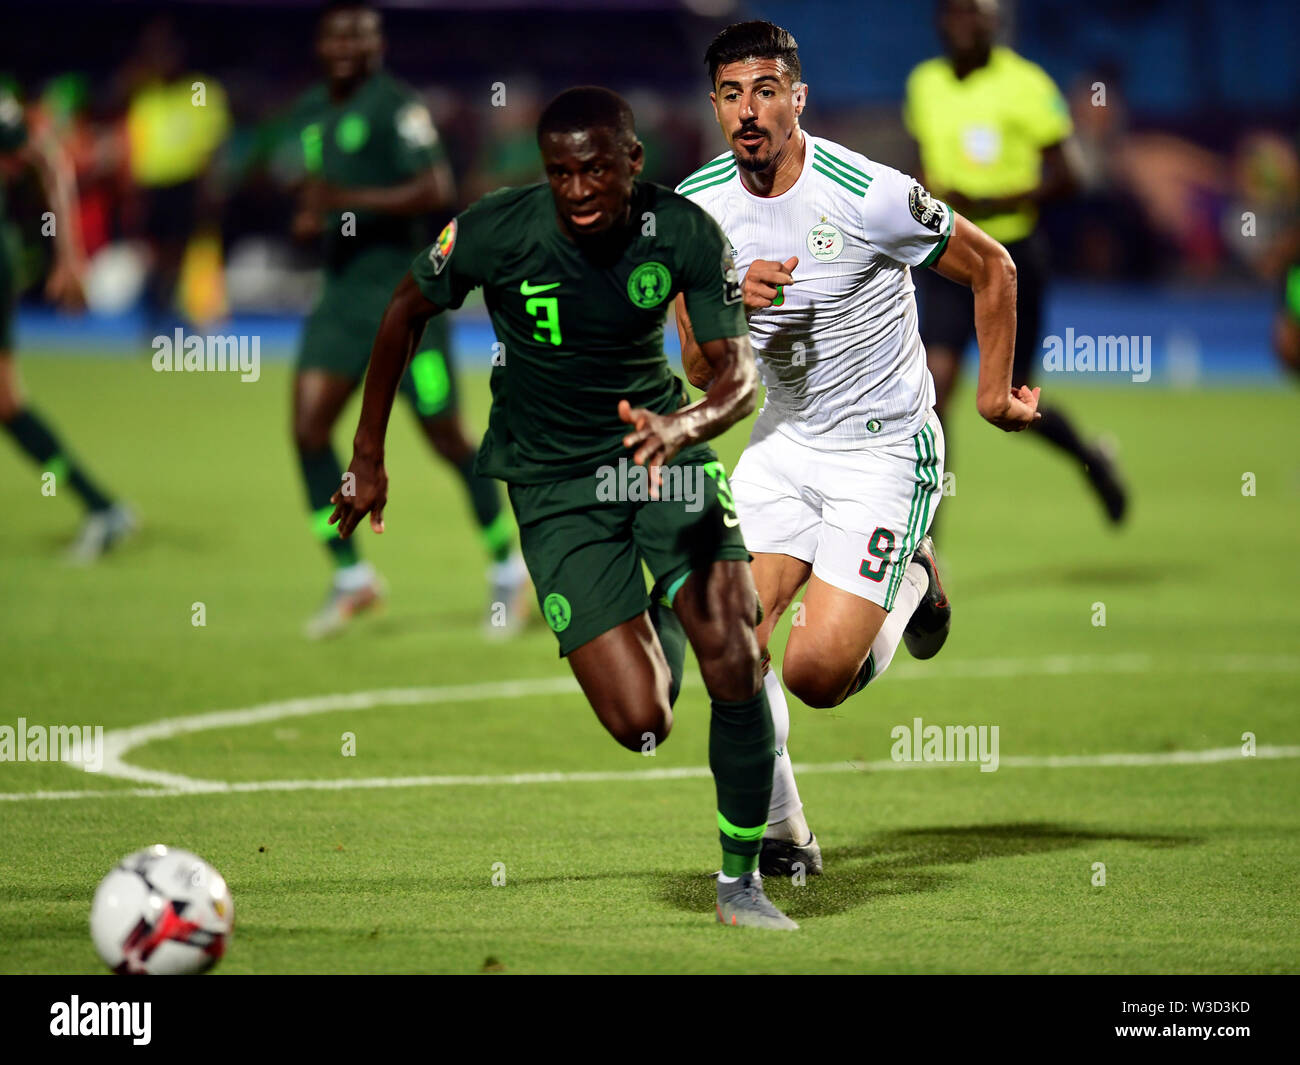 Cairo. 14th July, 2019. Baghdad Boudedjah (R) of Algeria vies with Jamilu Collins of Nigeria during the semifinal match between Algeria and Nigeria at the 2019 Africa Cup of Nations in Cairo, Egypt on July 14, 2019. Credit: Wu Huiwo/Xinhua/Alamy Live News - Stock Image